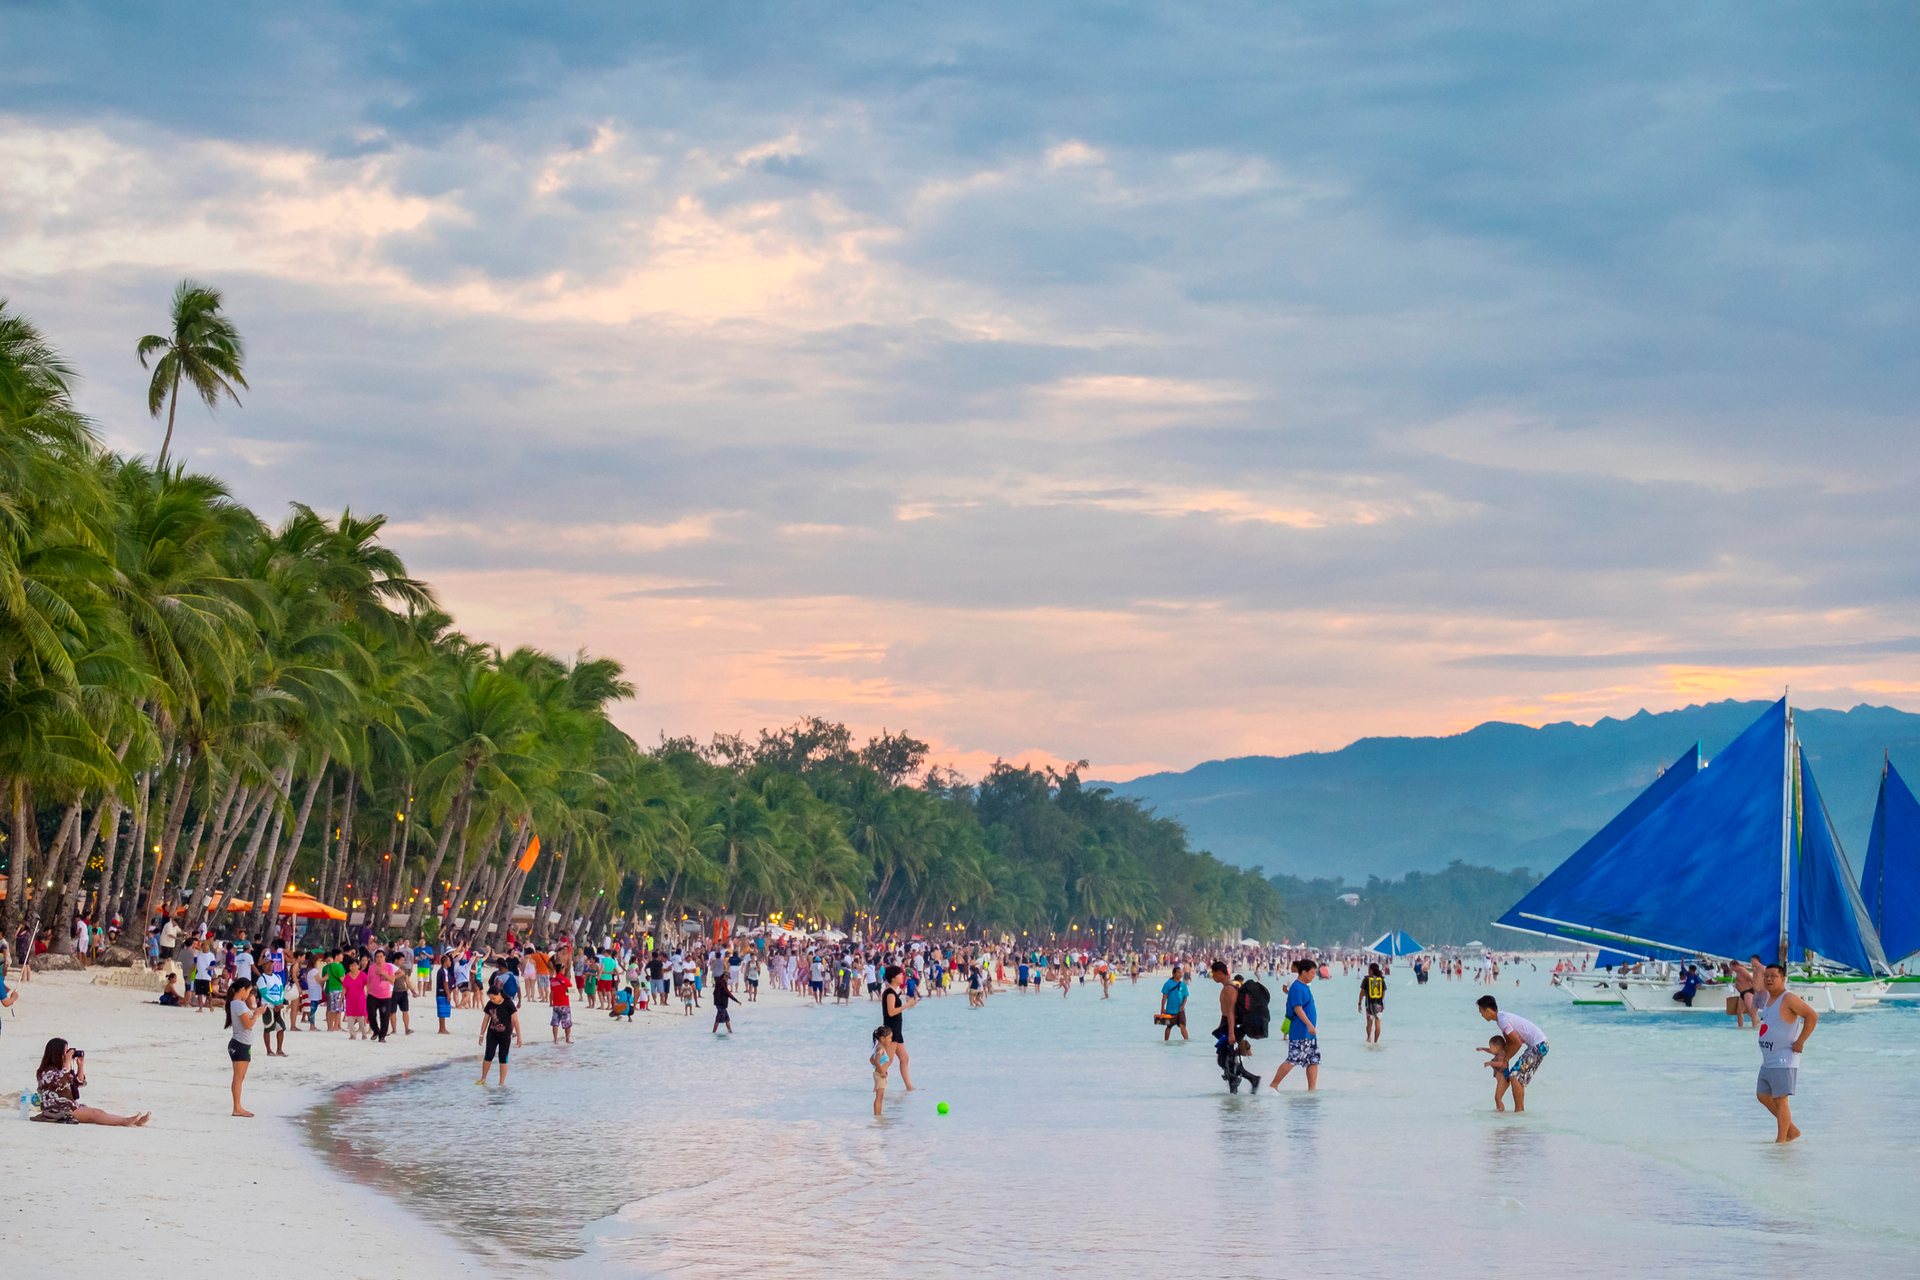 The Philippines reopened 'paradise' after six-month cleanup. So why isn't everyone happy?